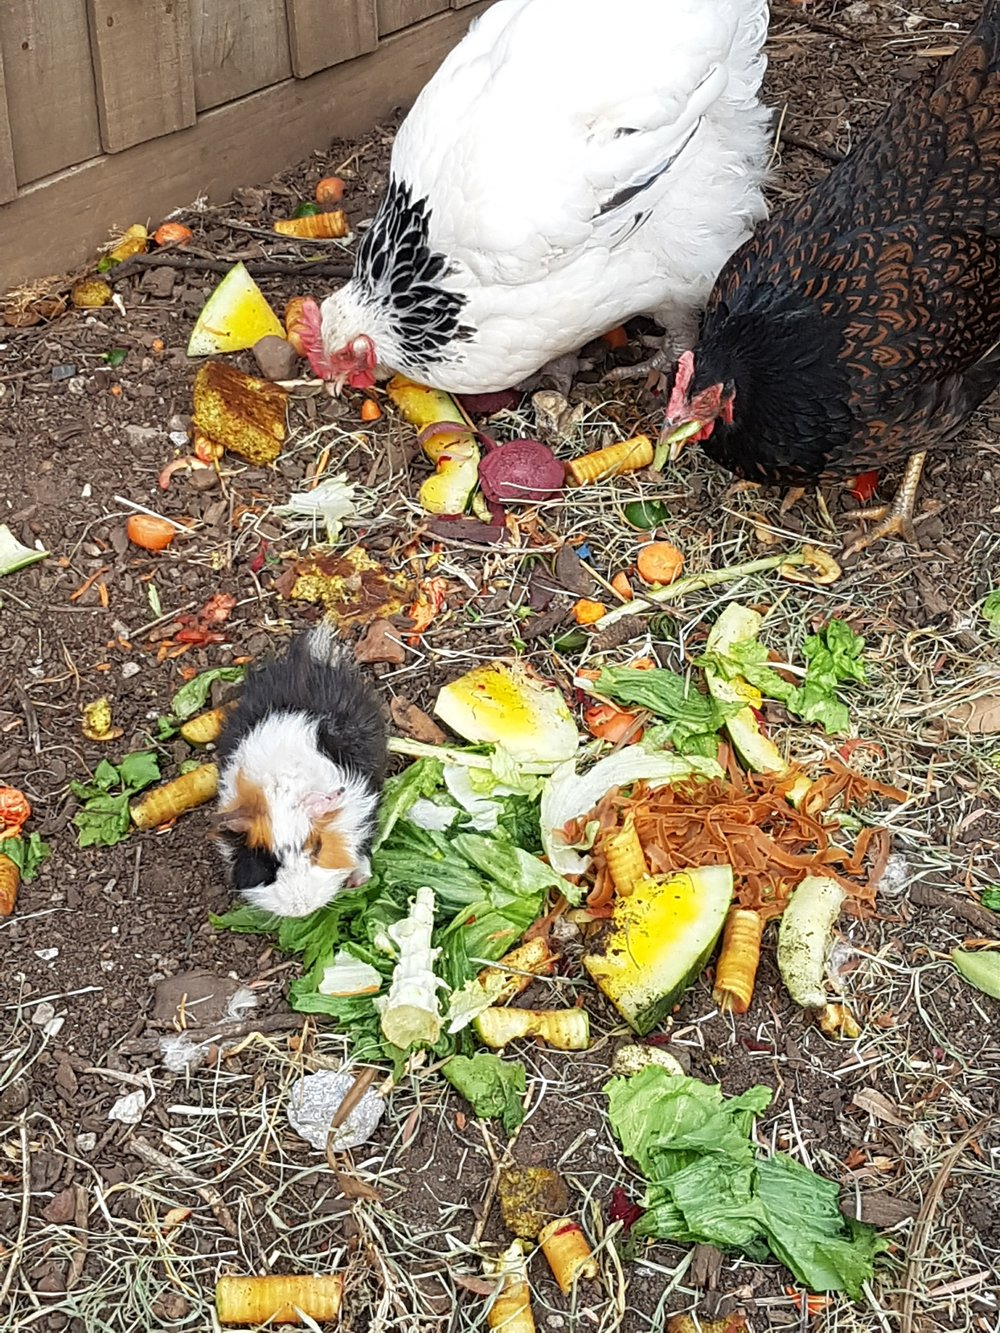 The guinea pigs and chickens get the vegie scraps and leftovers at our place